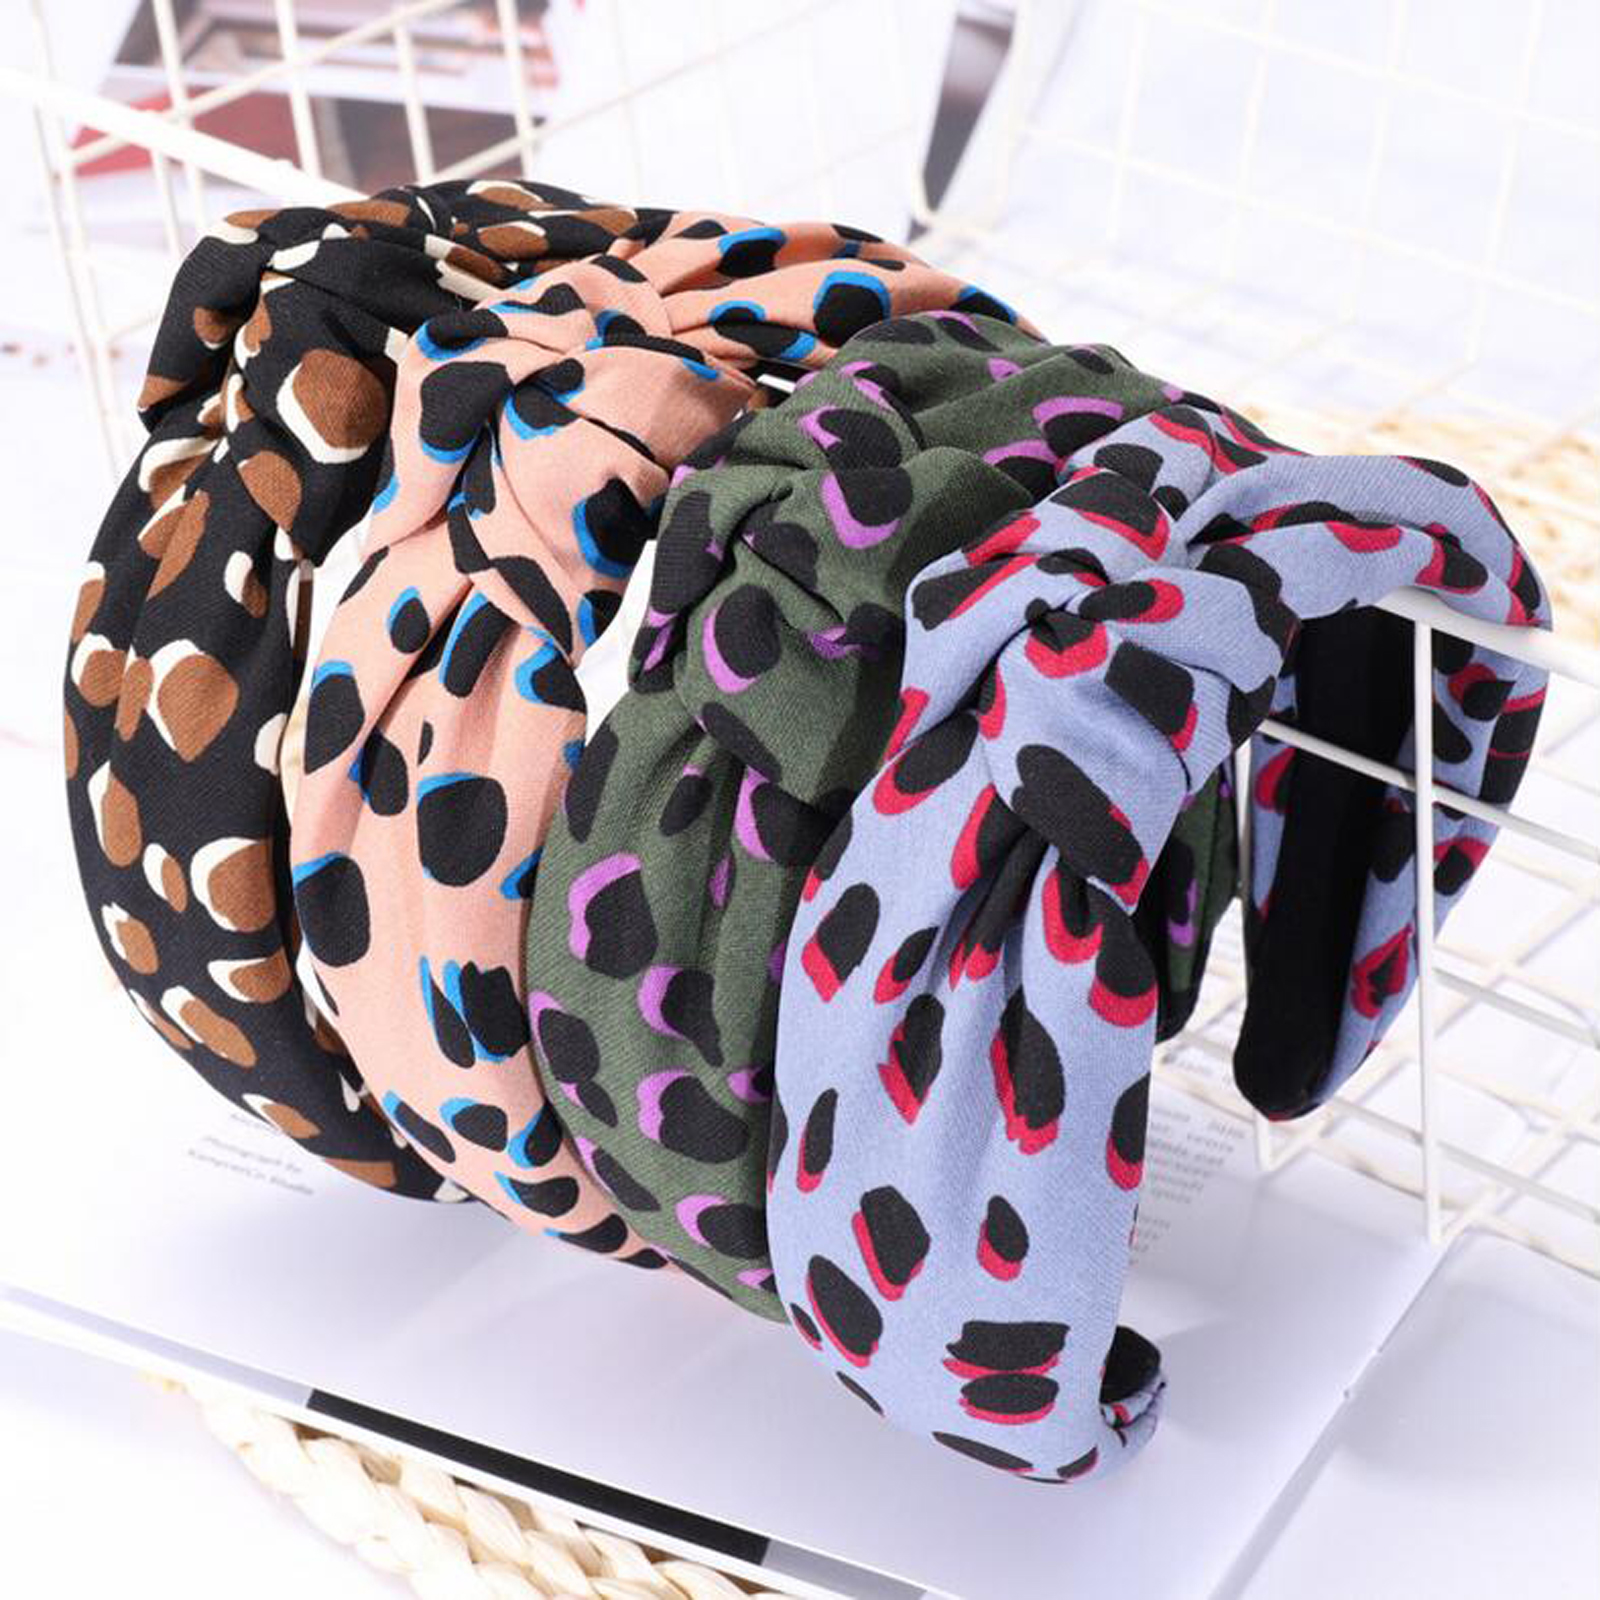 2019 New Fashion Bohemia Headband Women Leopard Cloth Hairband Adult Soft Female Headwear Turban Hair Accessories